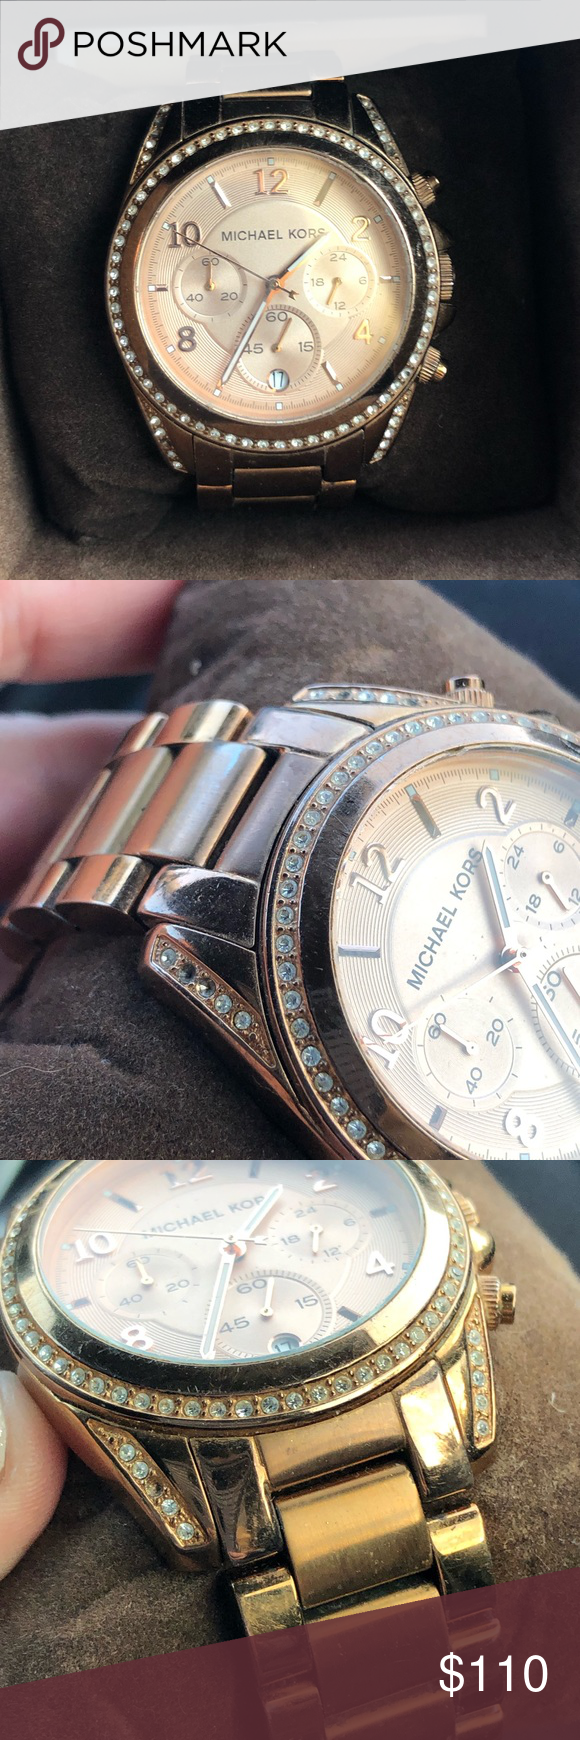 9f3b673111c3 Michael Kors Watch Rose gold Michael Kors Watch. Please see pictures for  flaws. It s has extra spacers and comes with the box. Michael Kors  Accessories ...